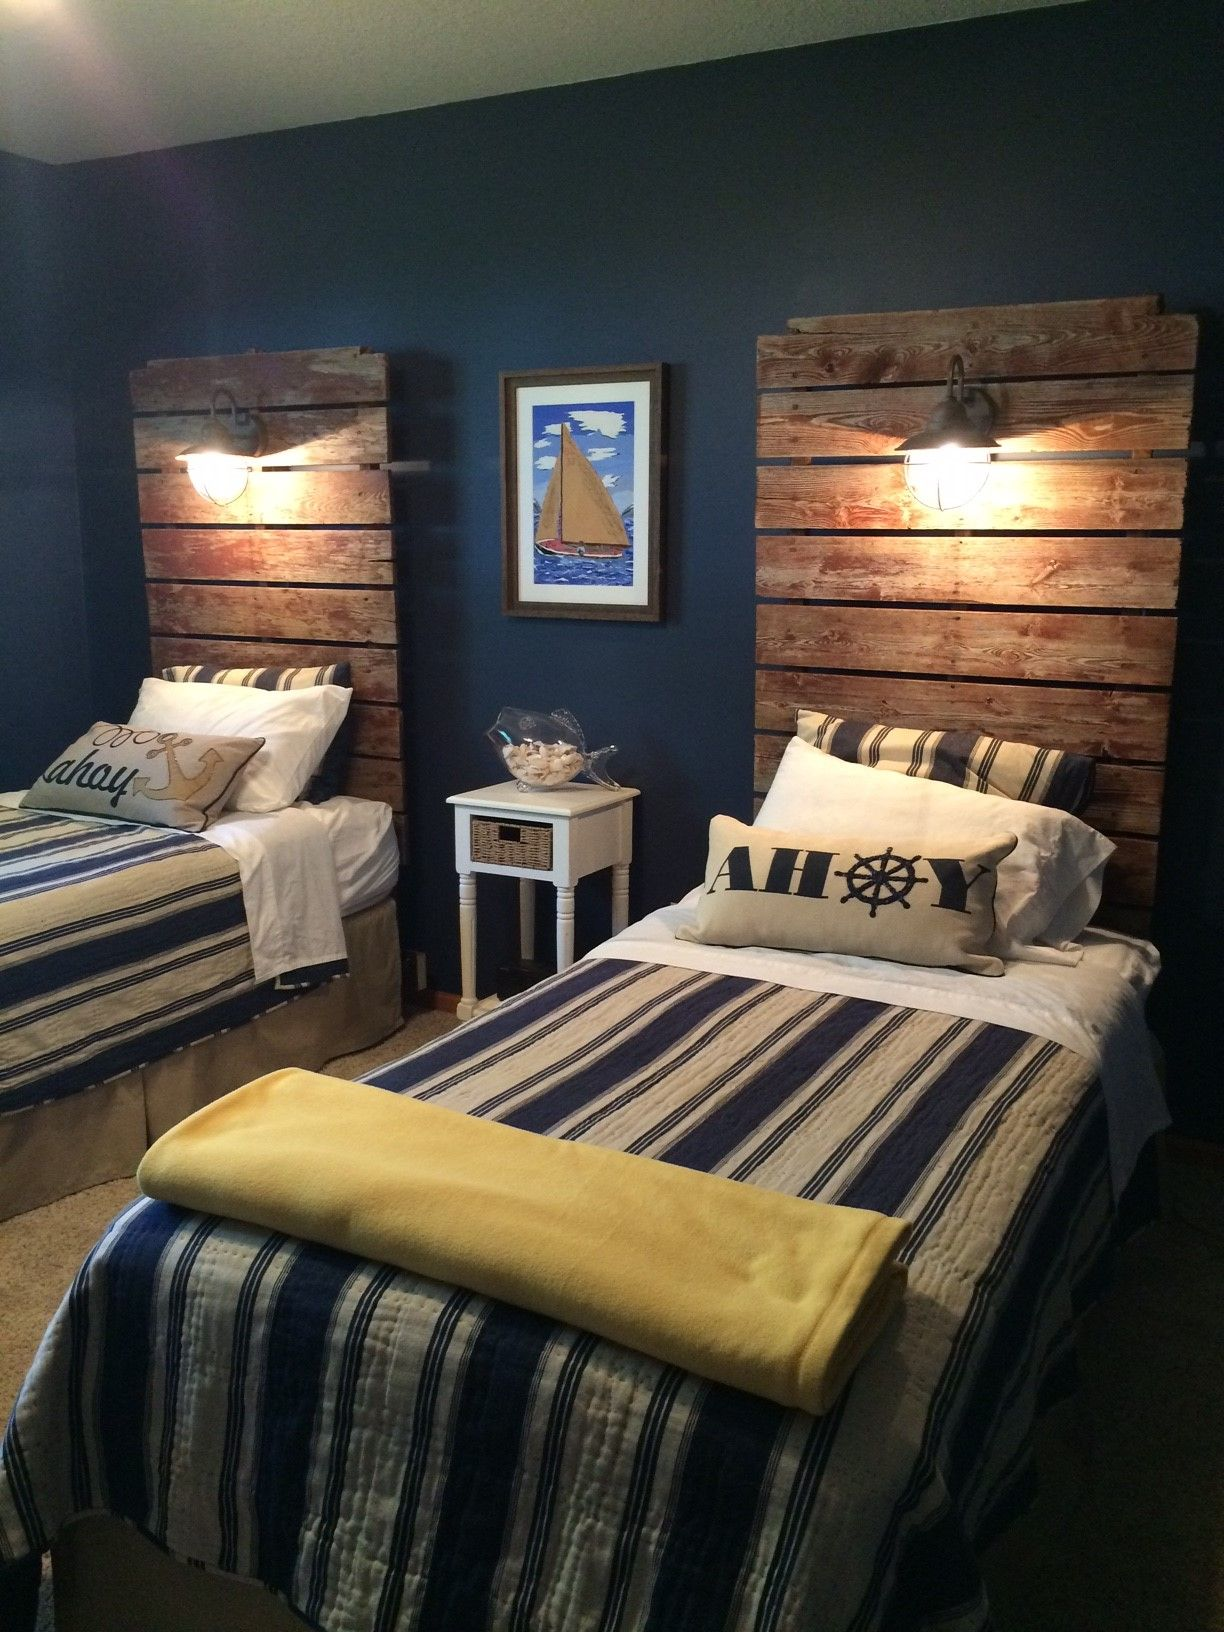 A Large Headboard With Overhead Light | Wood headboard and Industrial